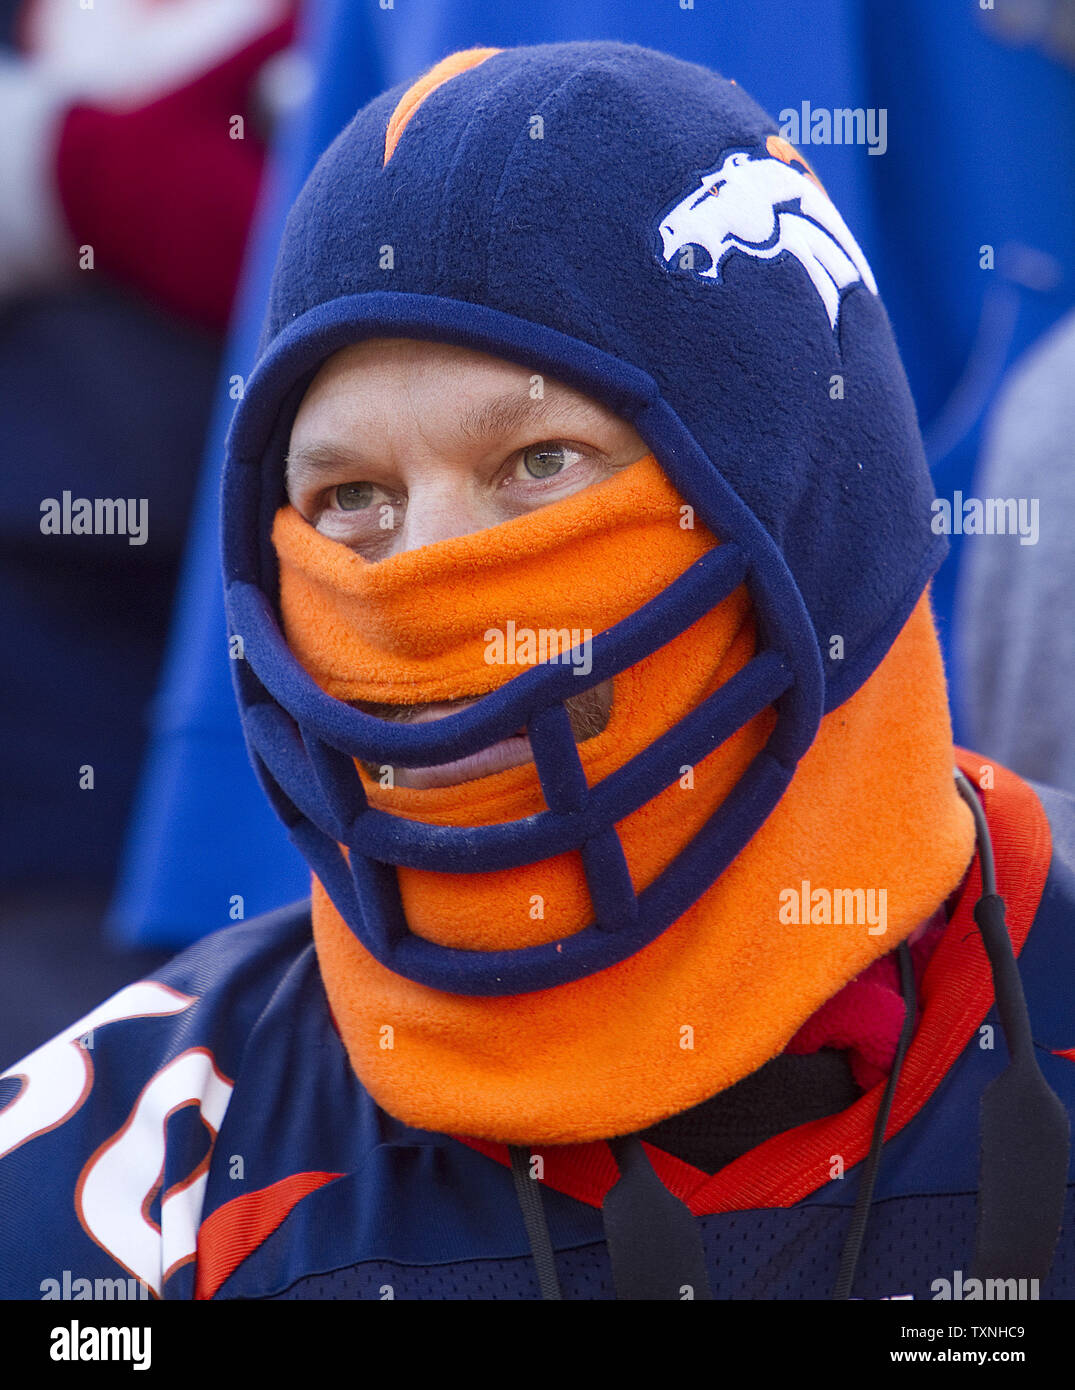 info for c6240 2289c A Denver Broncos fan wears head gear to ward off the cold ...